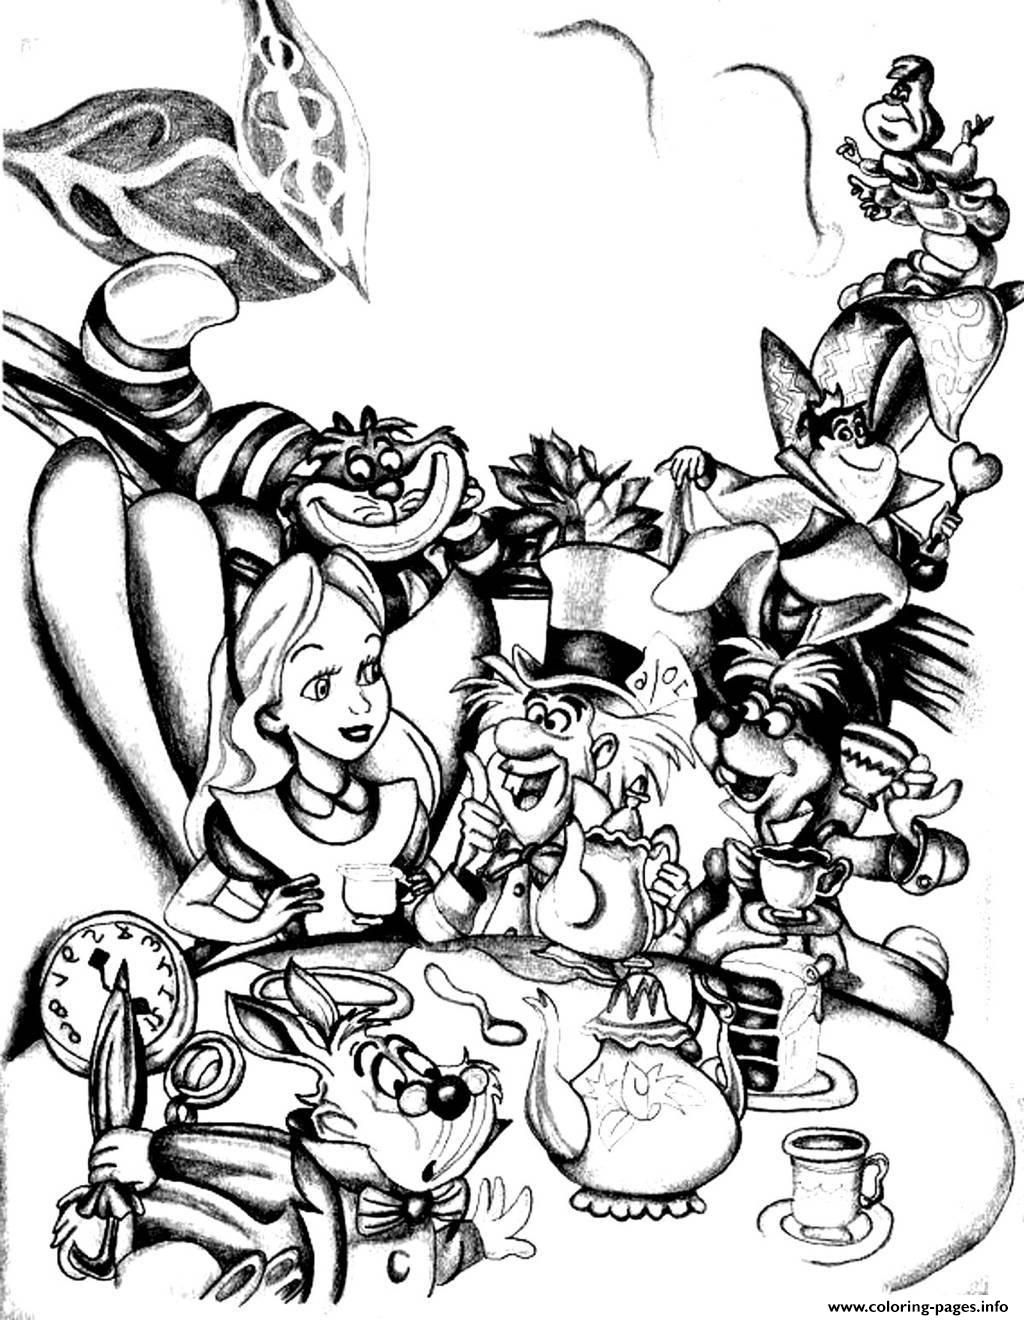 Printable drawing pages for adults - Adult Disney Drawing Alice In Wonderland Coloring Pages Printable